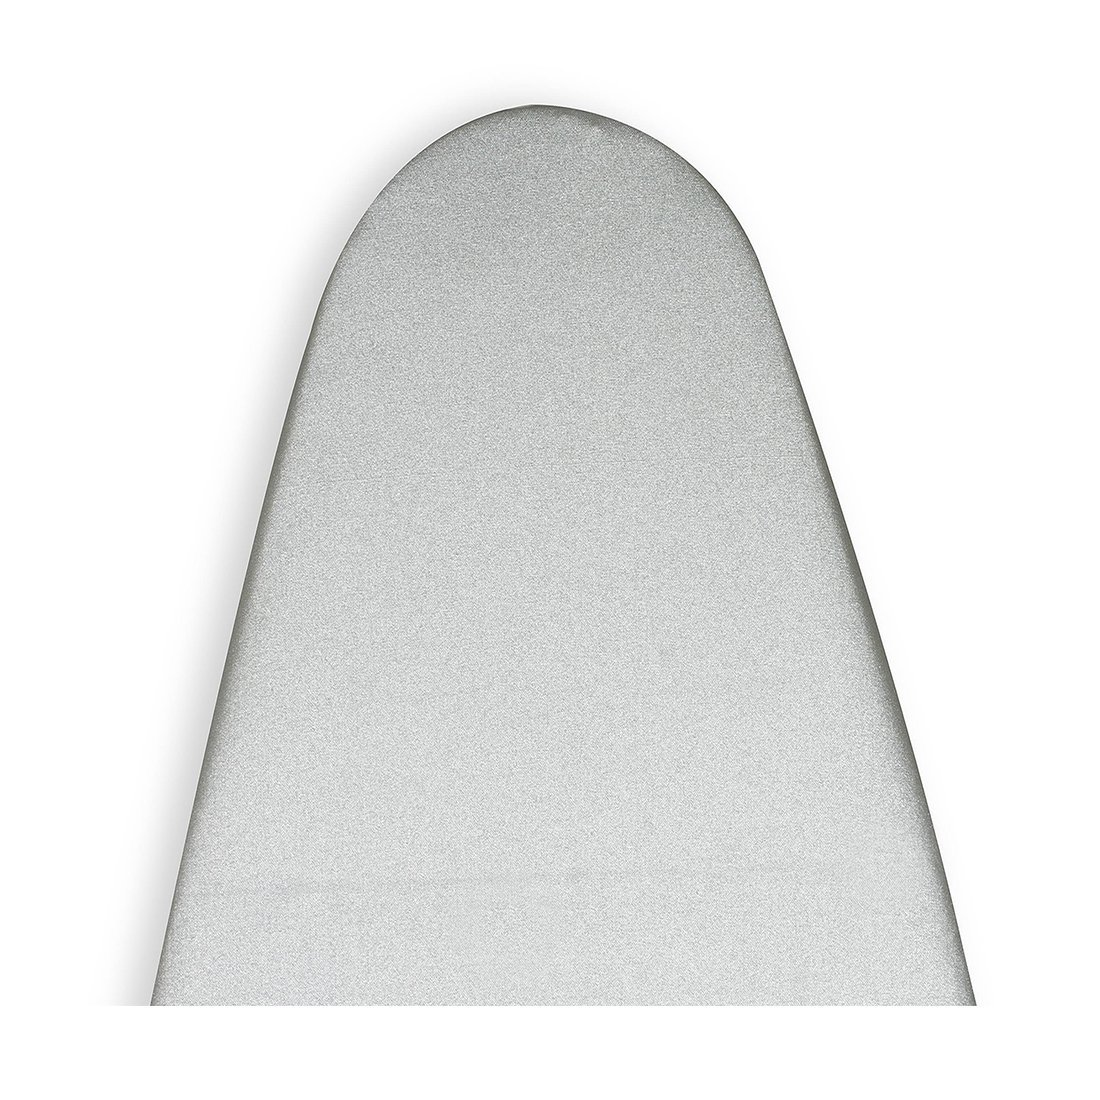 Encasa Homes Ironing Board Cover 'Silver Super Luxury' with Foam & Felt PAD (Fits Board 15''x54'')